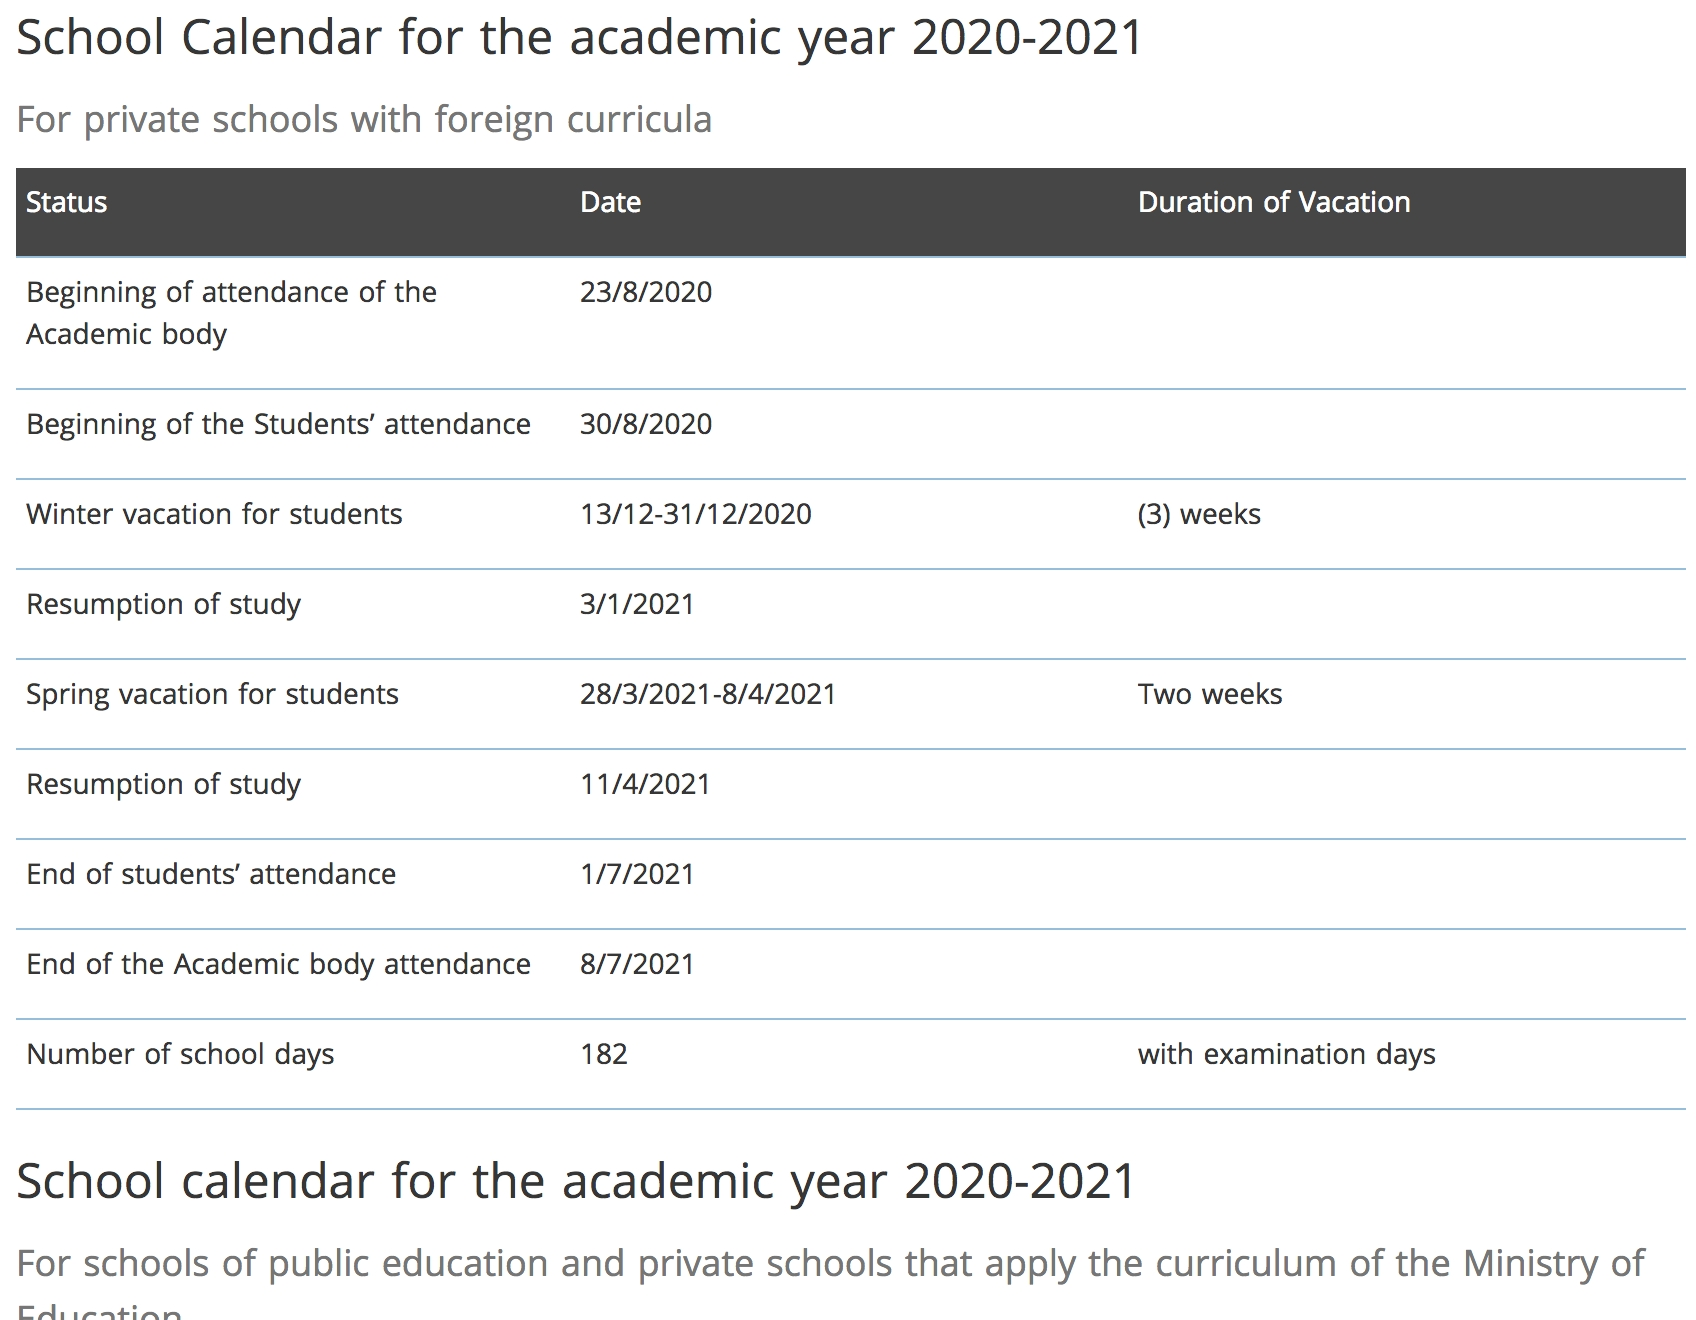 Here's The 2019-2020 Uae School Calendar - Khaleej Times_School Calendar In Uae 2020